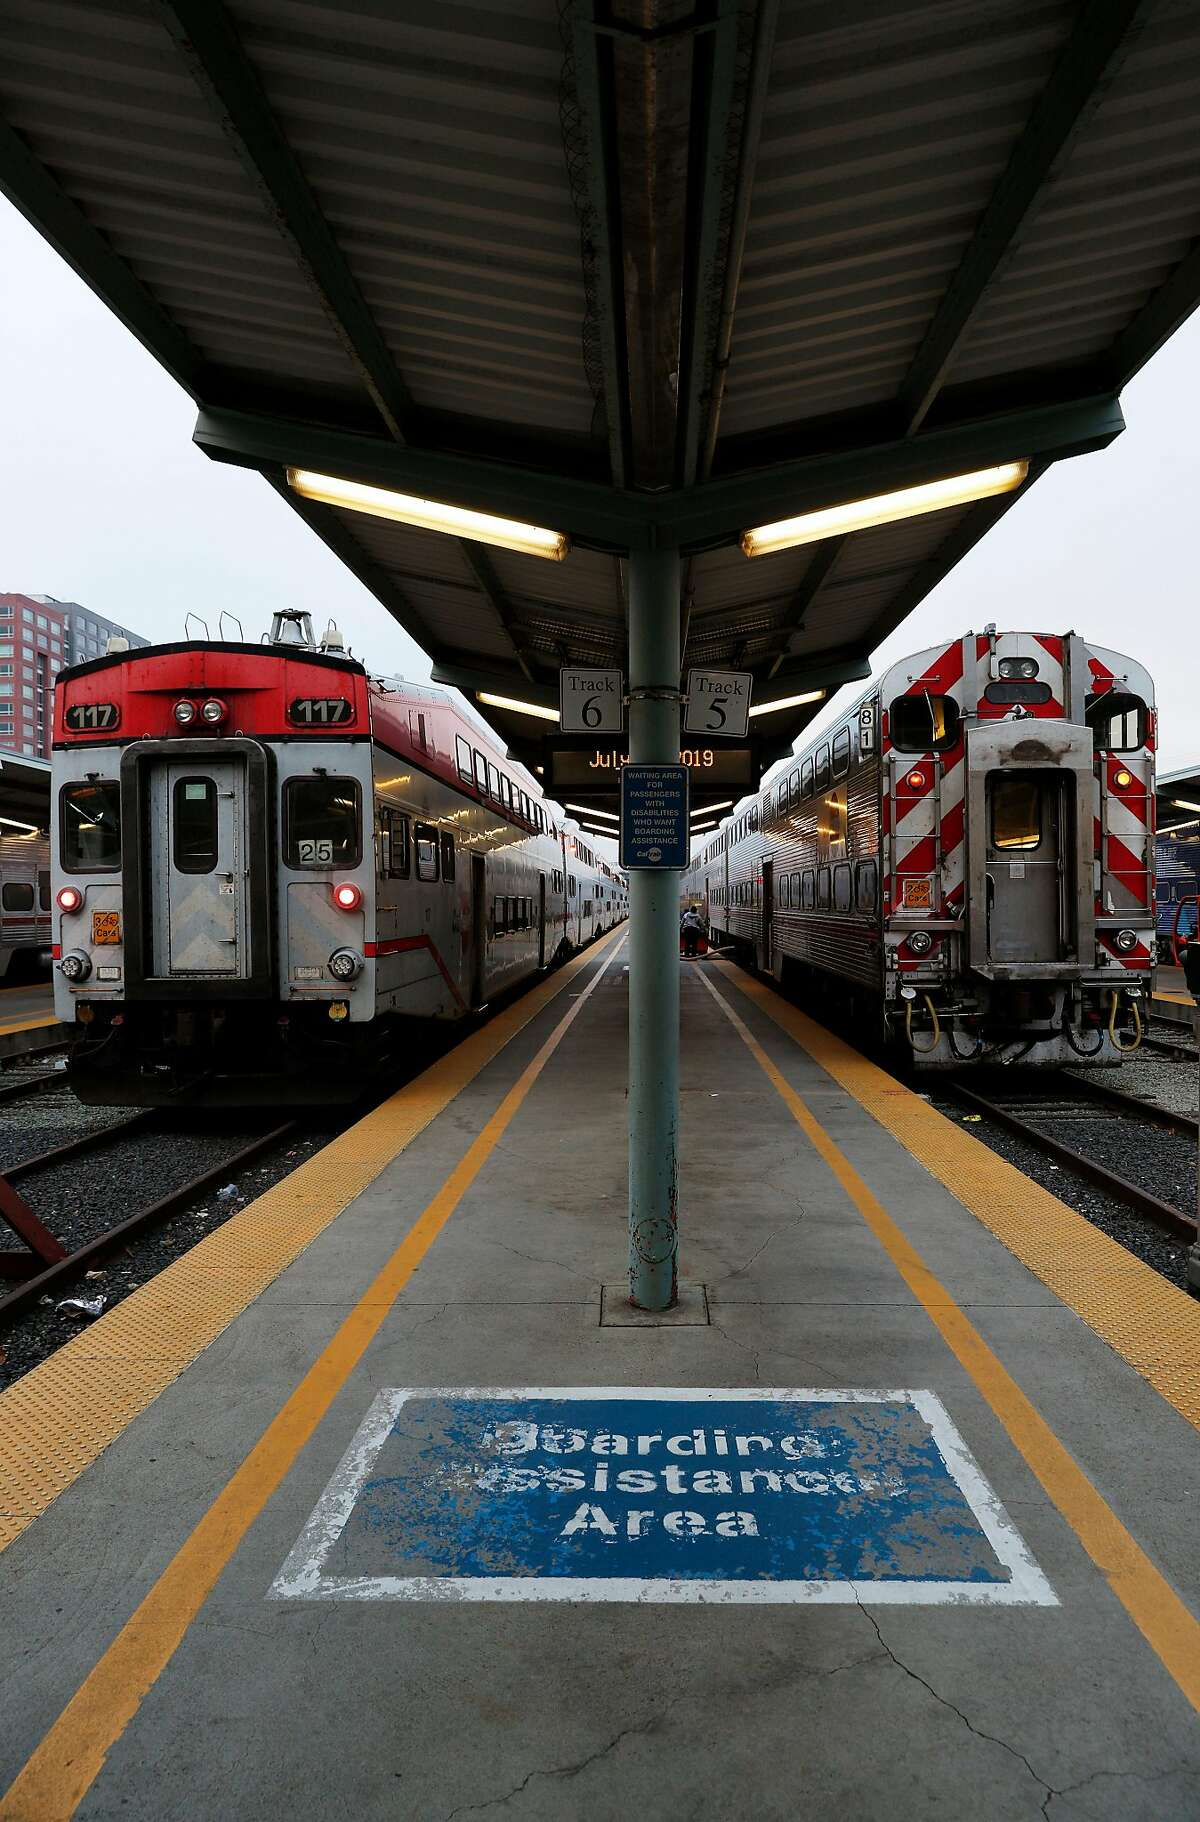 Two Caltrain trains sit at the Caltrain Station in San Francisco, Calif., on Thursday, July 18, 2019. Business leaders and transportation officials are putting together a sales tax ballot measure for next year that would generate billions for transportation infrastructure in the Bay Area. Top on their wish list is the downtown extension of Caltrain, with a tunnel running from the Mission Bay Area to the Transbay Terminal.